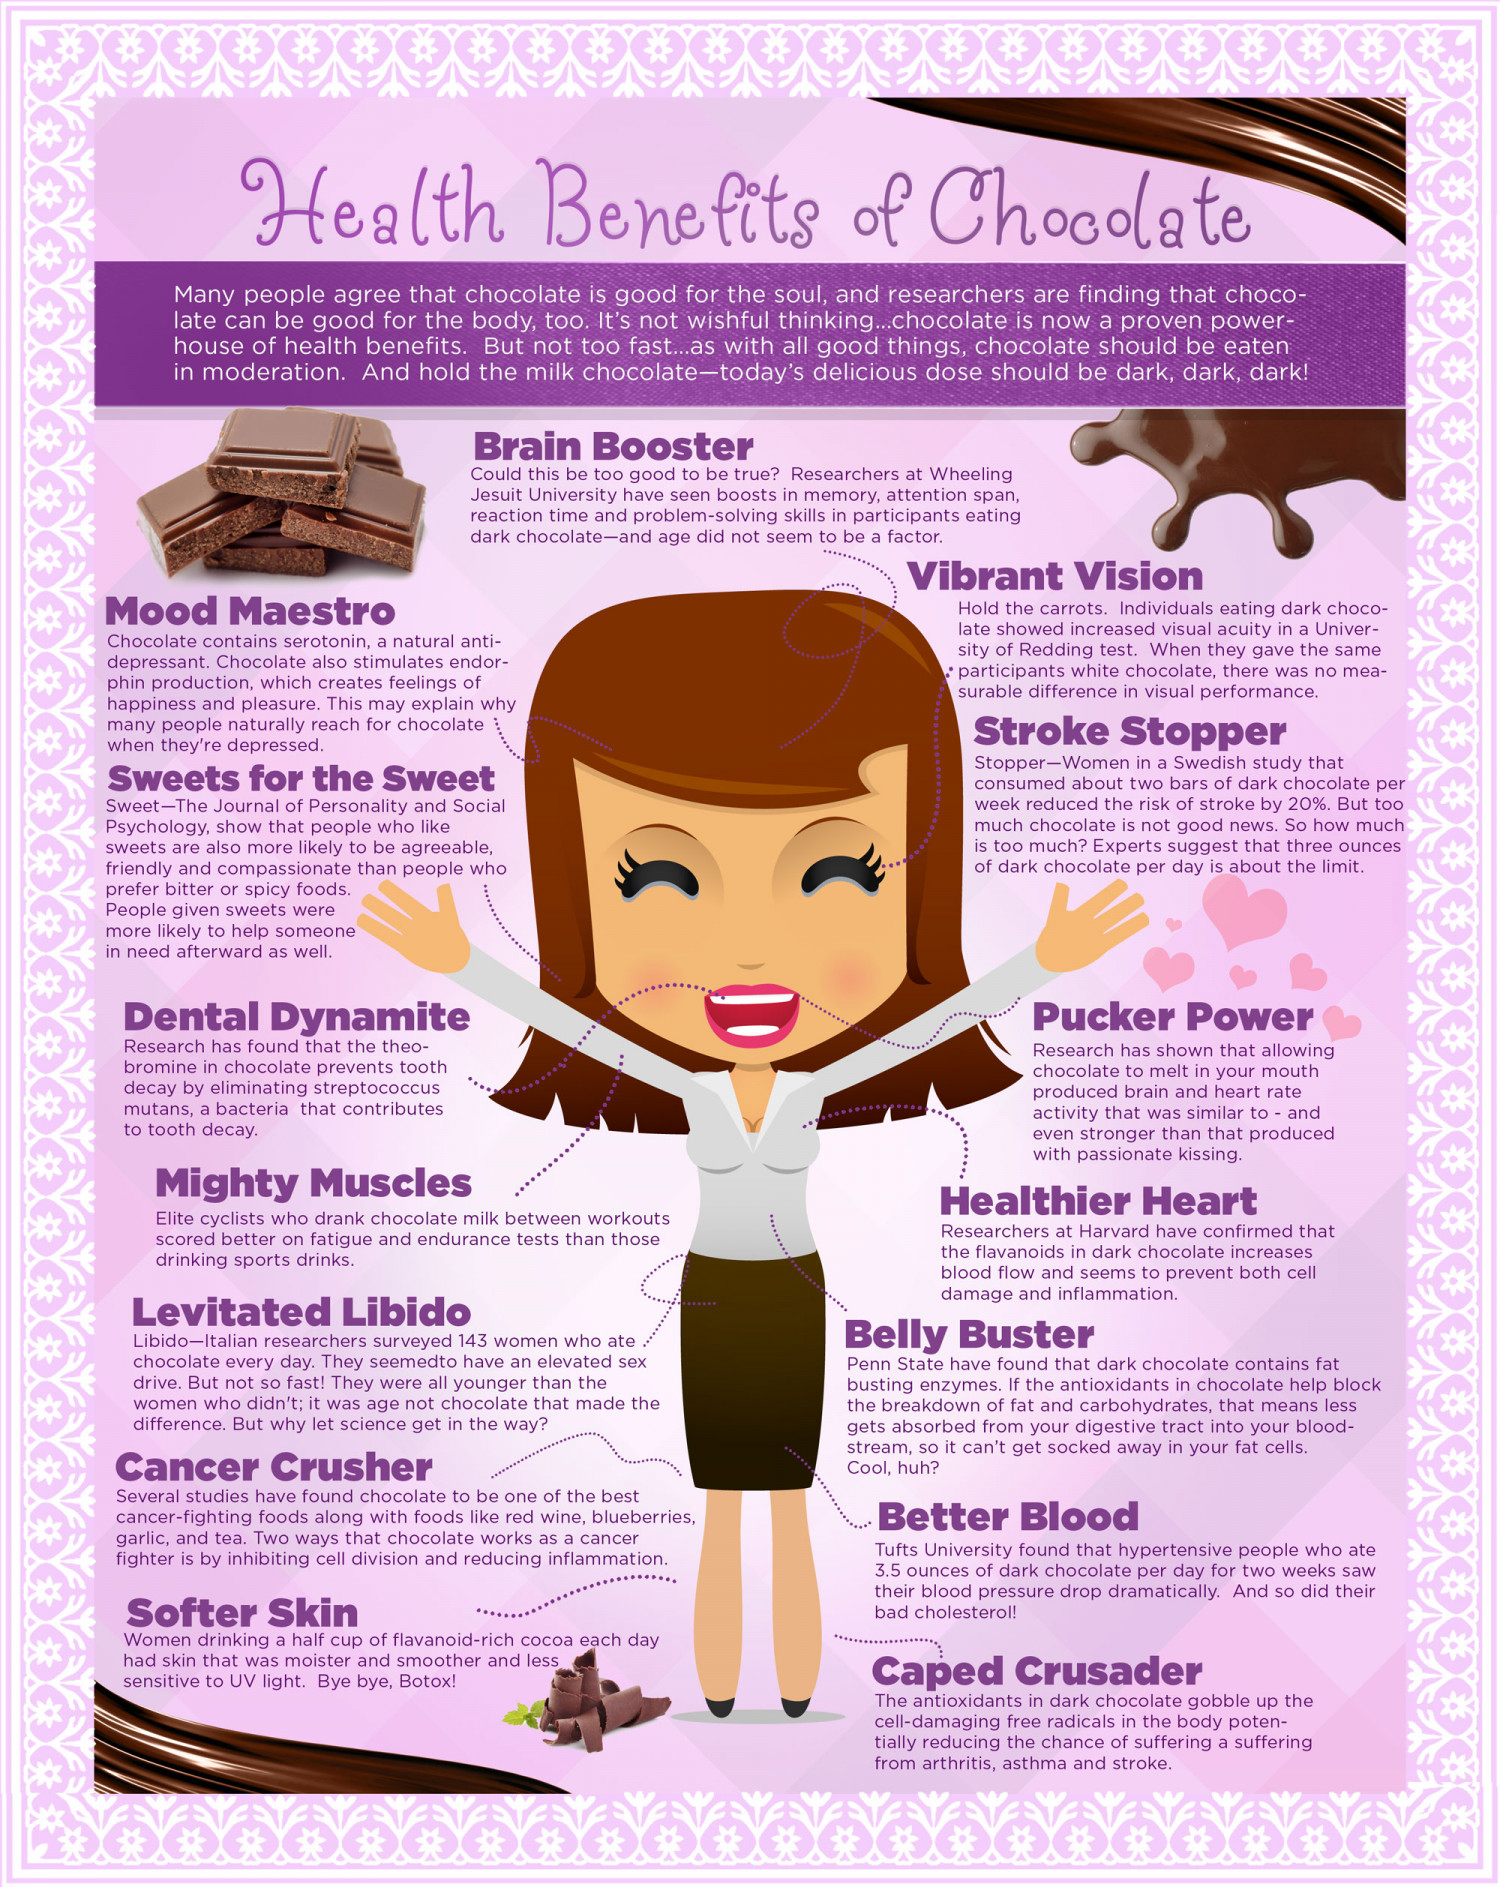 Health Benefits of Chocolate Infographic